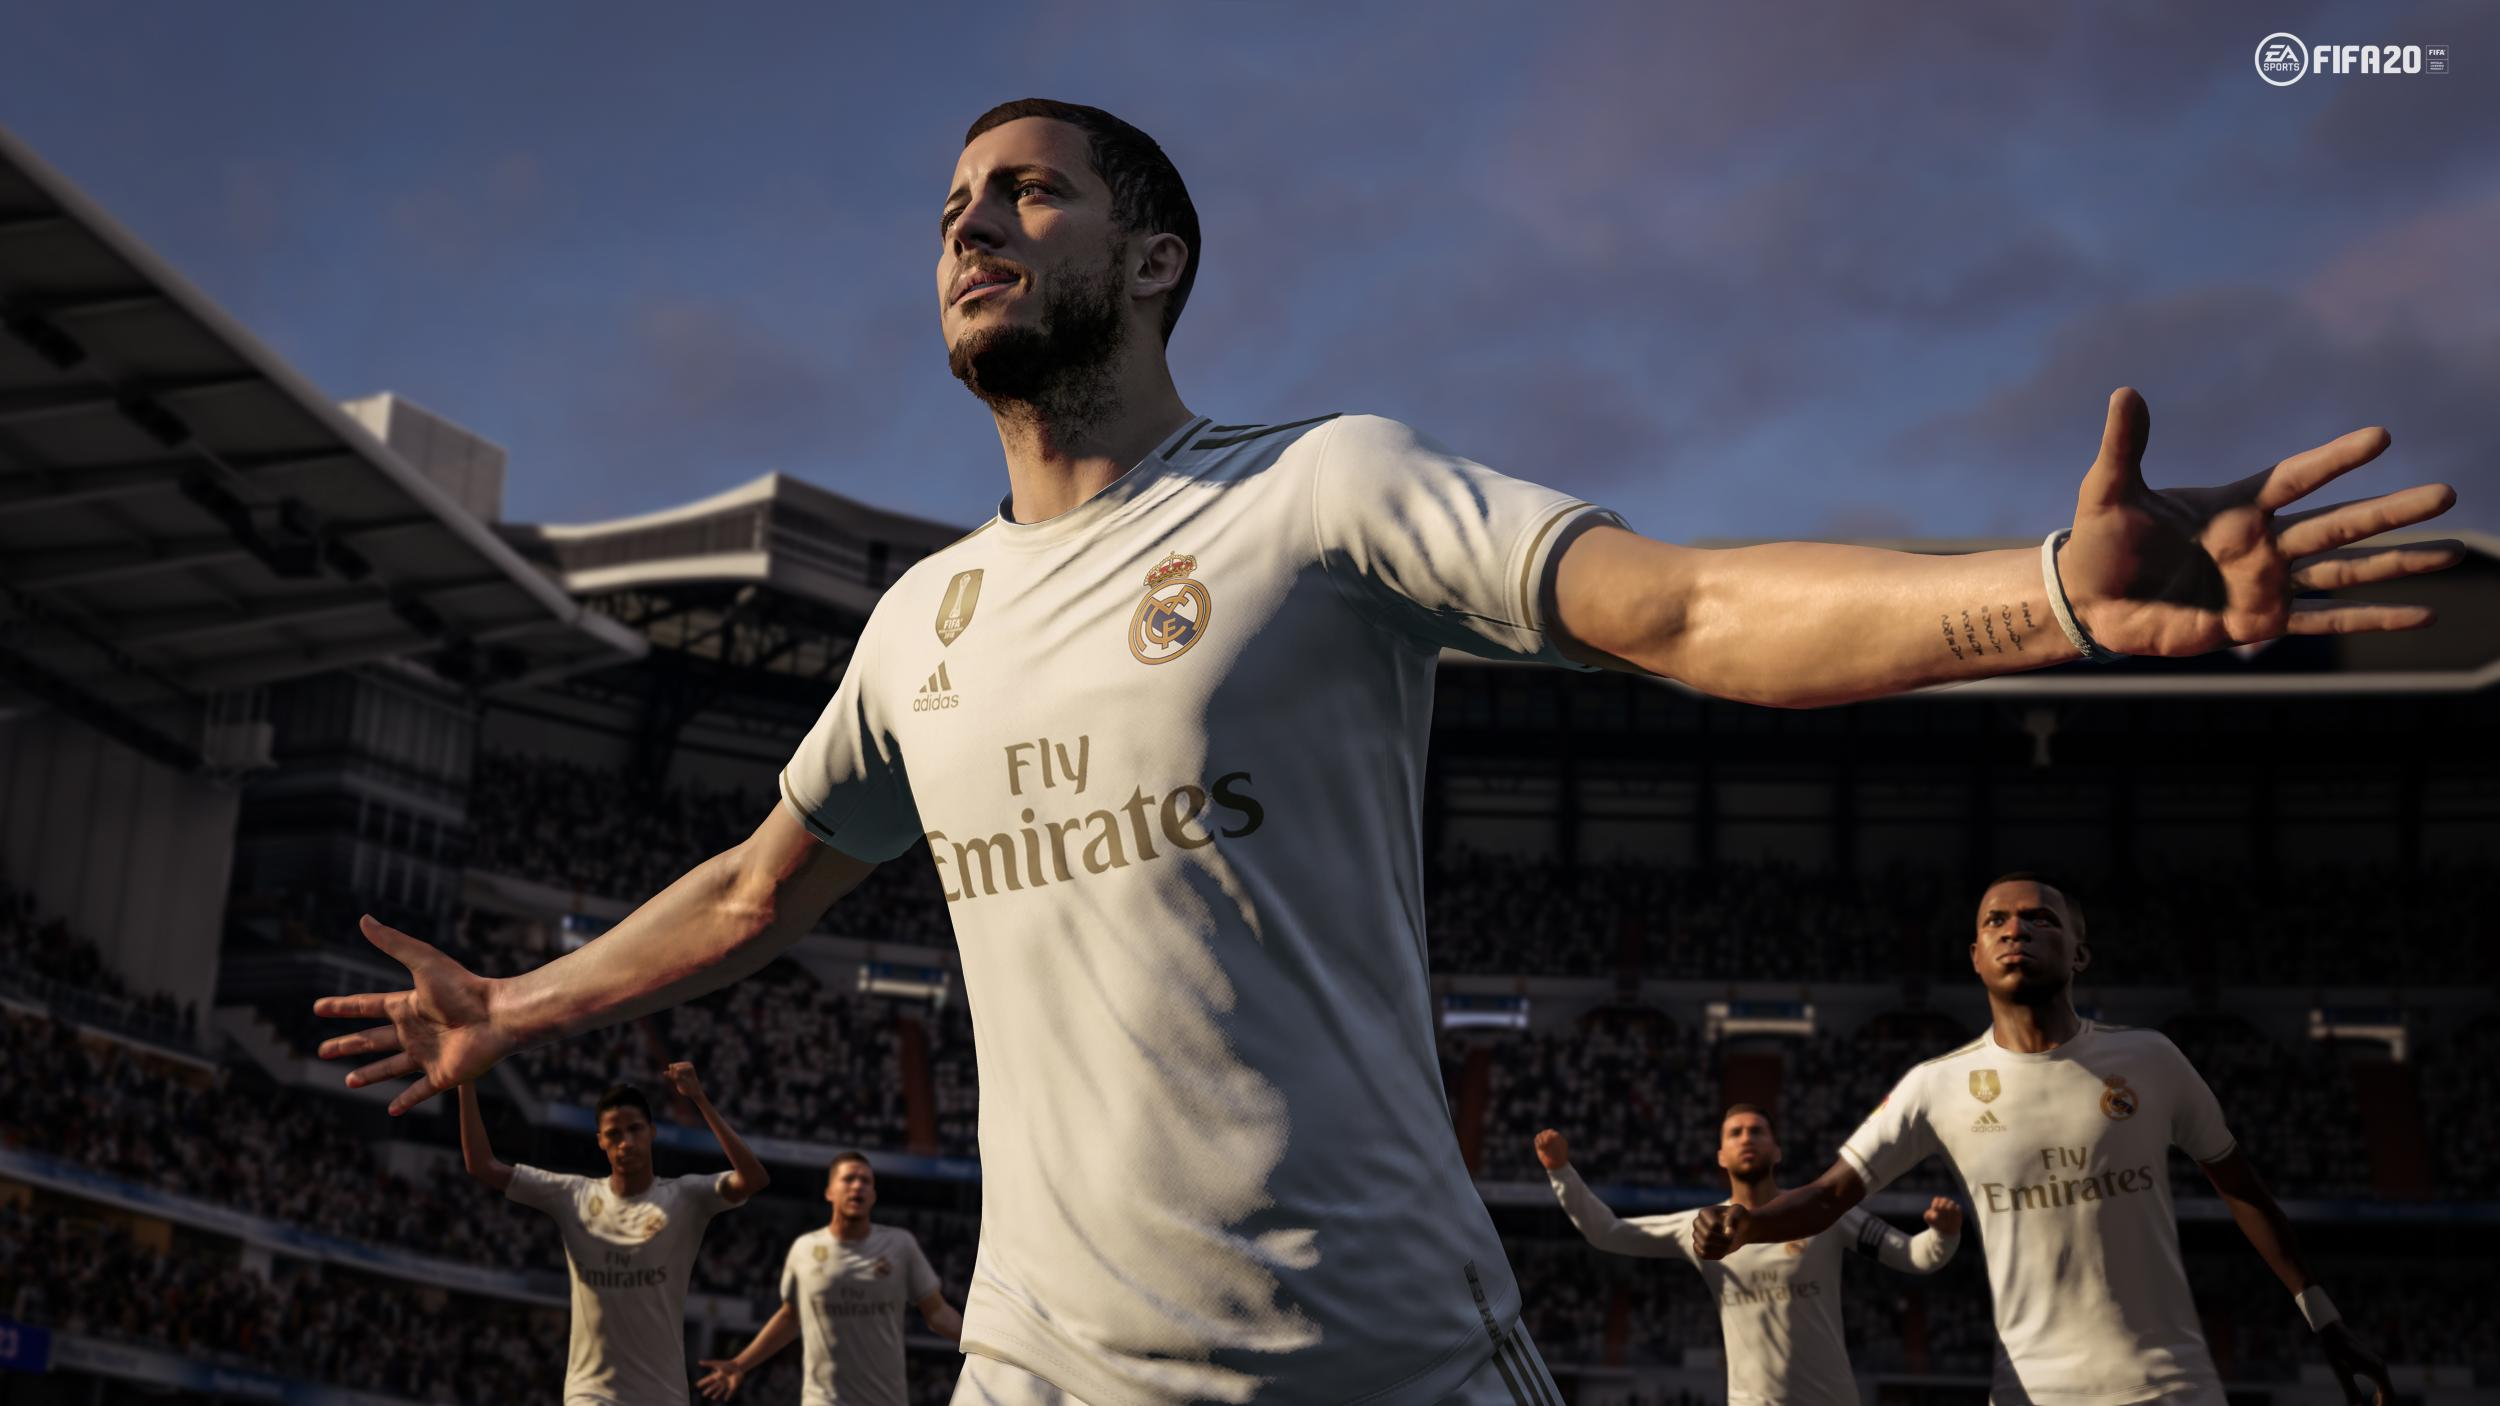 Fifa 20 career mode bug that 'made game unplayable' finally fixed